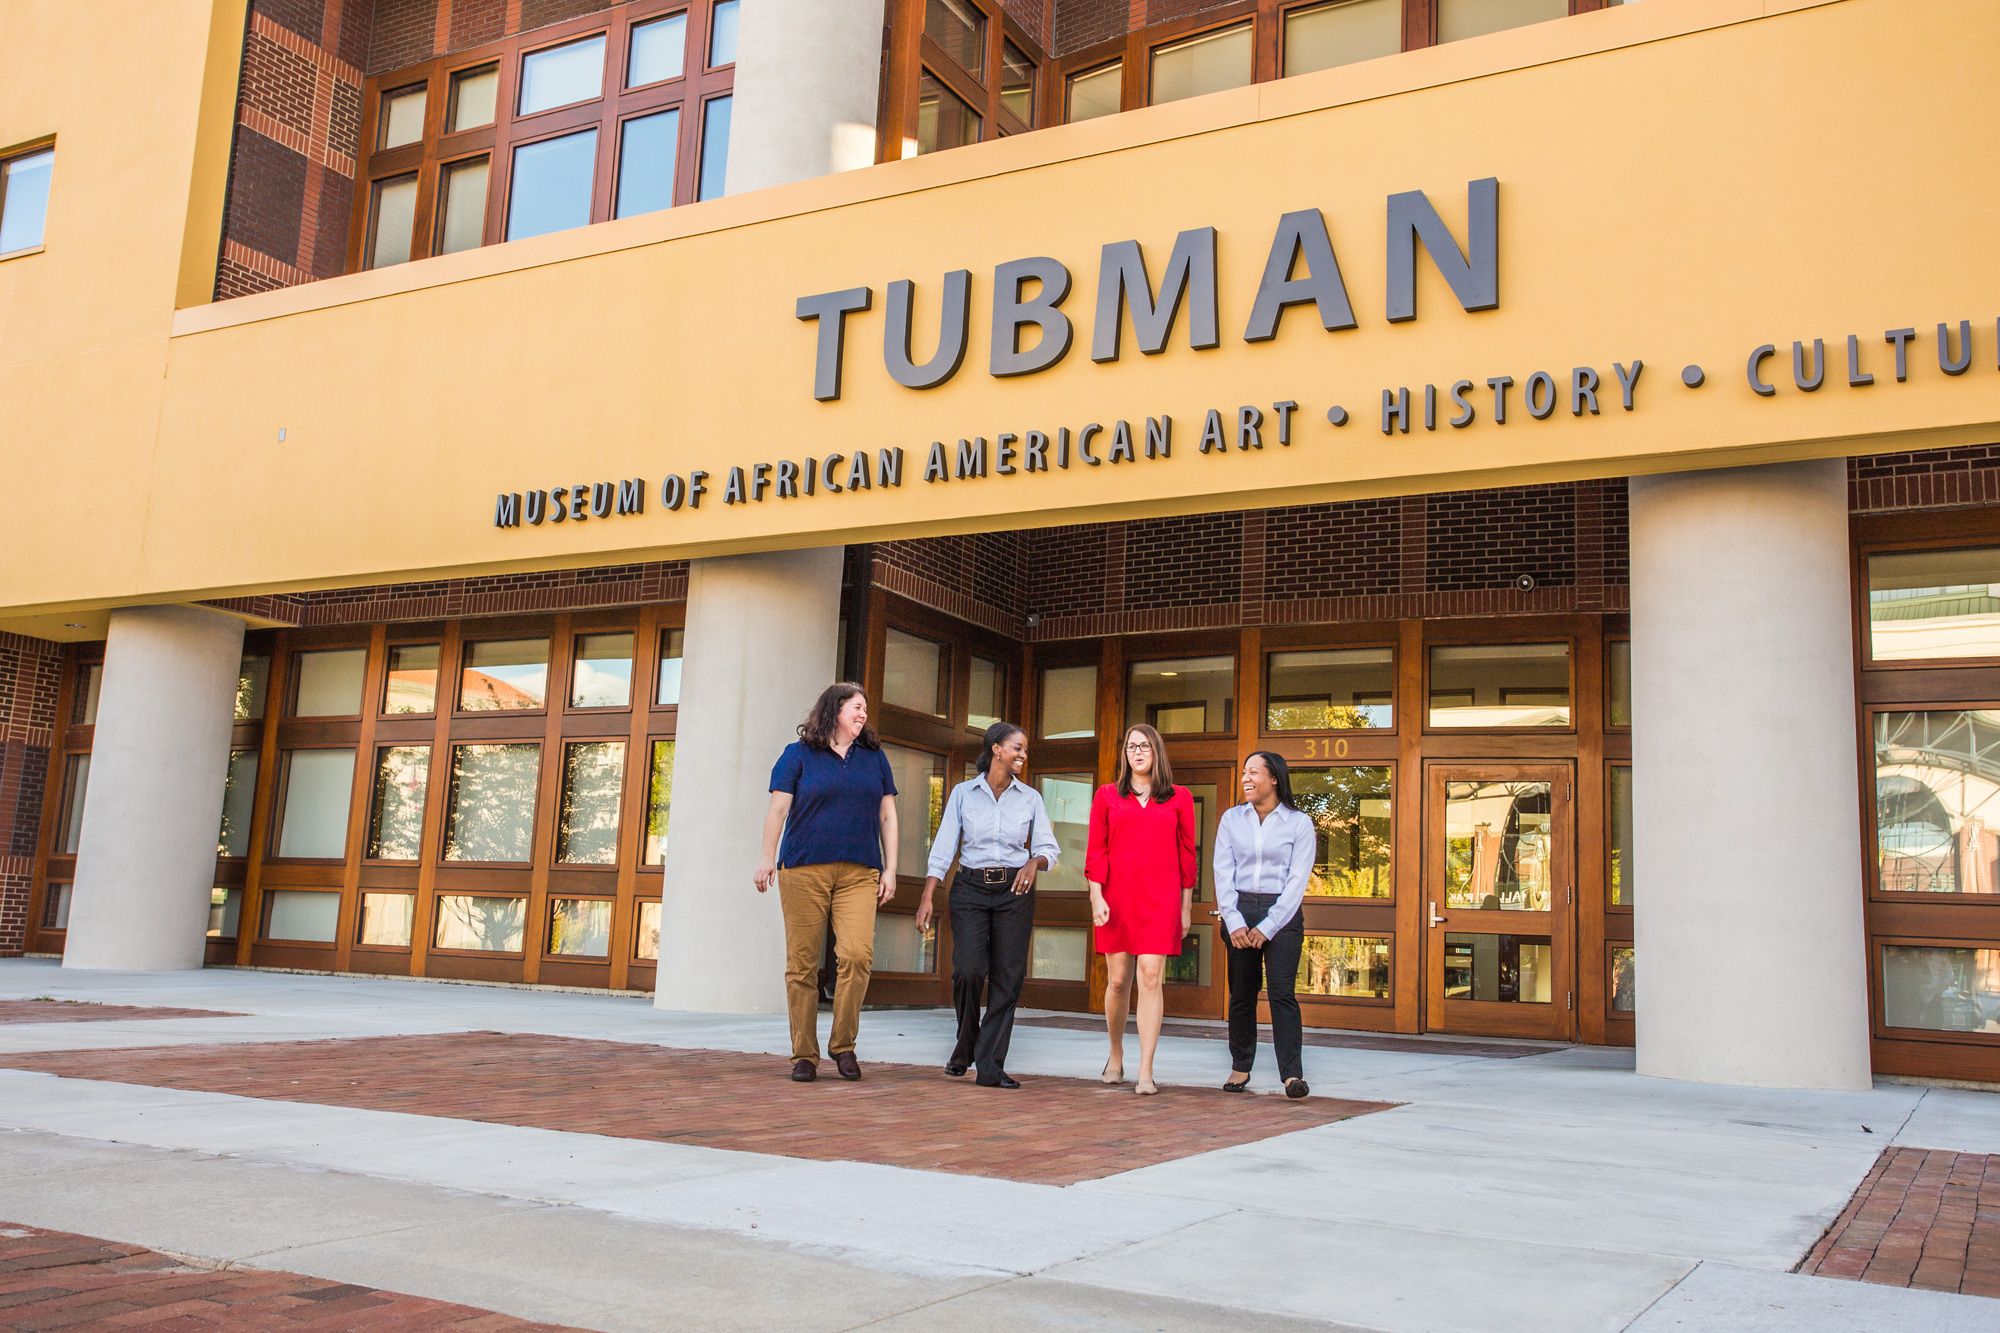 Four women walk outside the Tubman Museum in Macon, Georgia